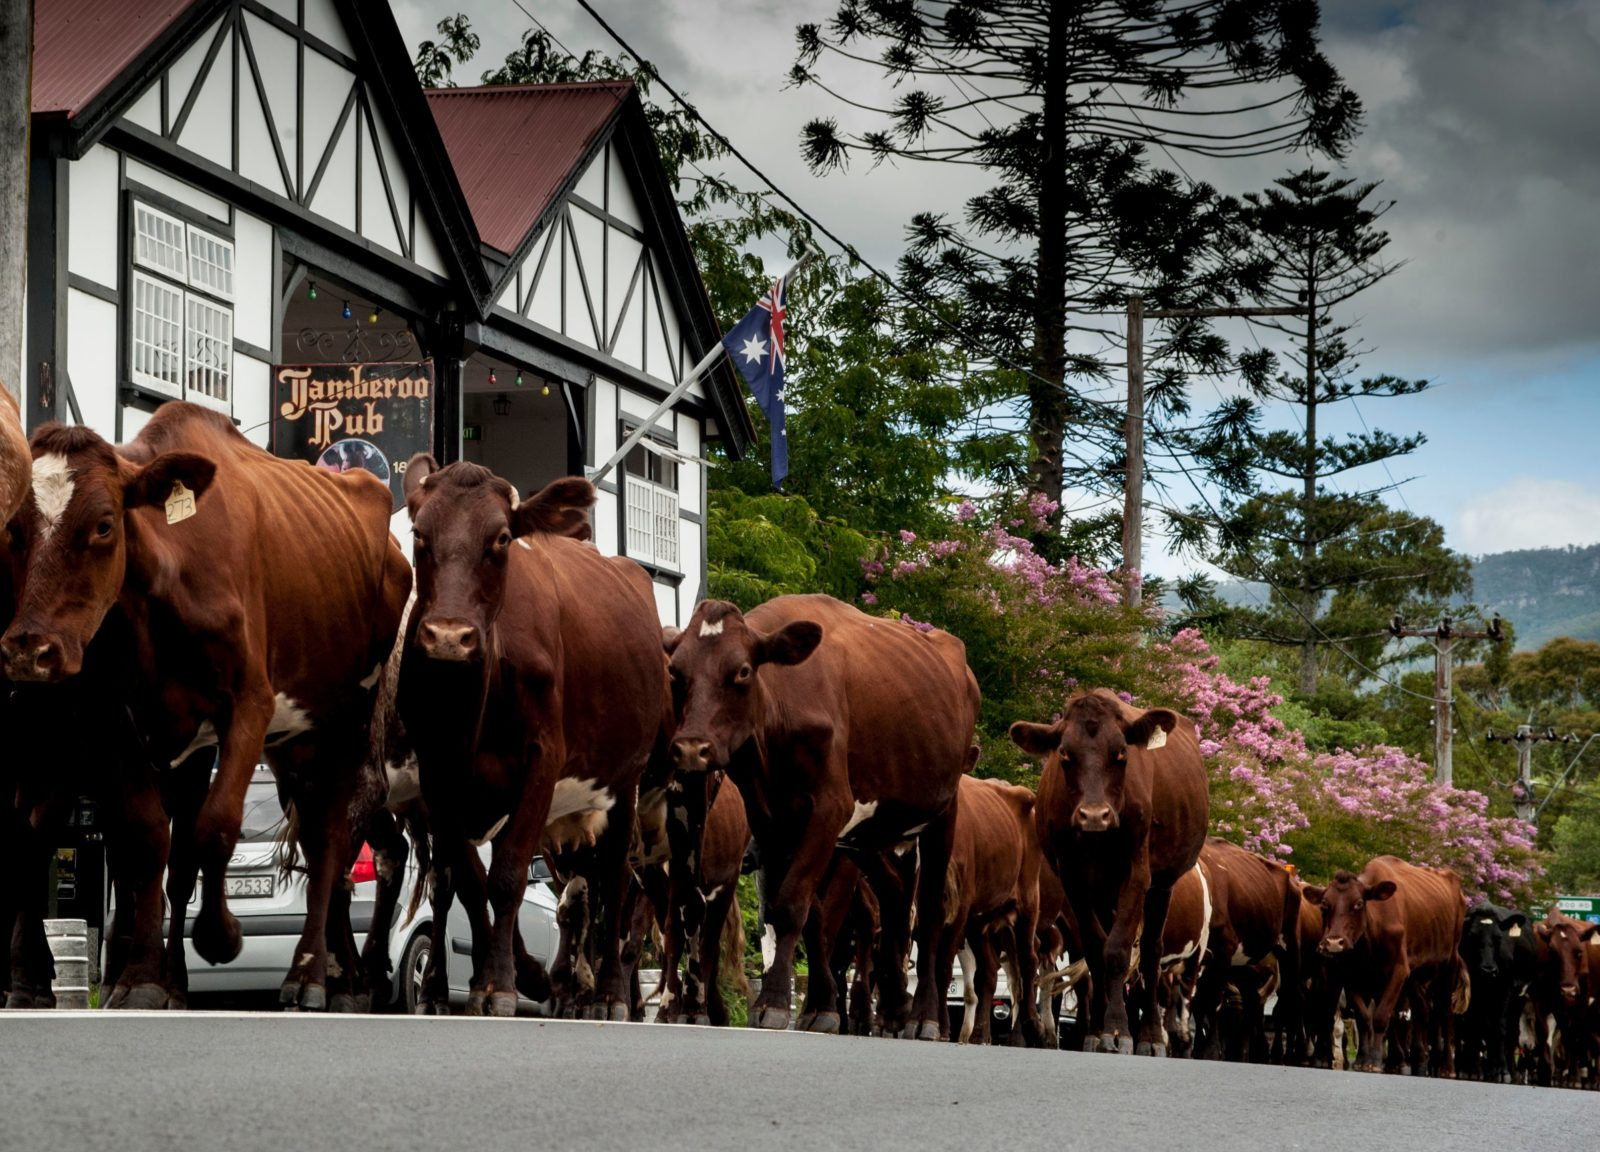 Cattle in the main street of Jamberoo